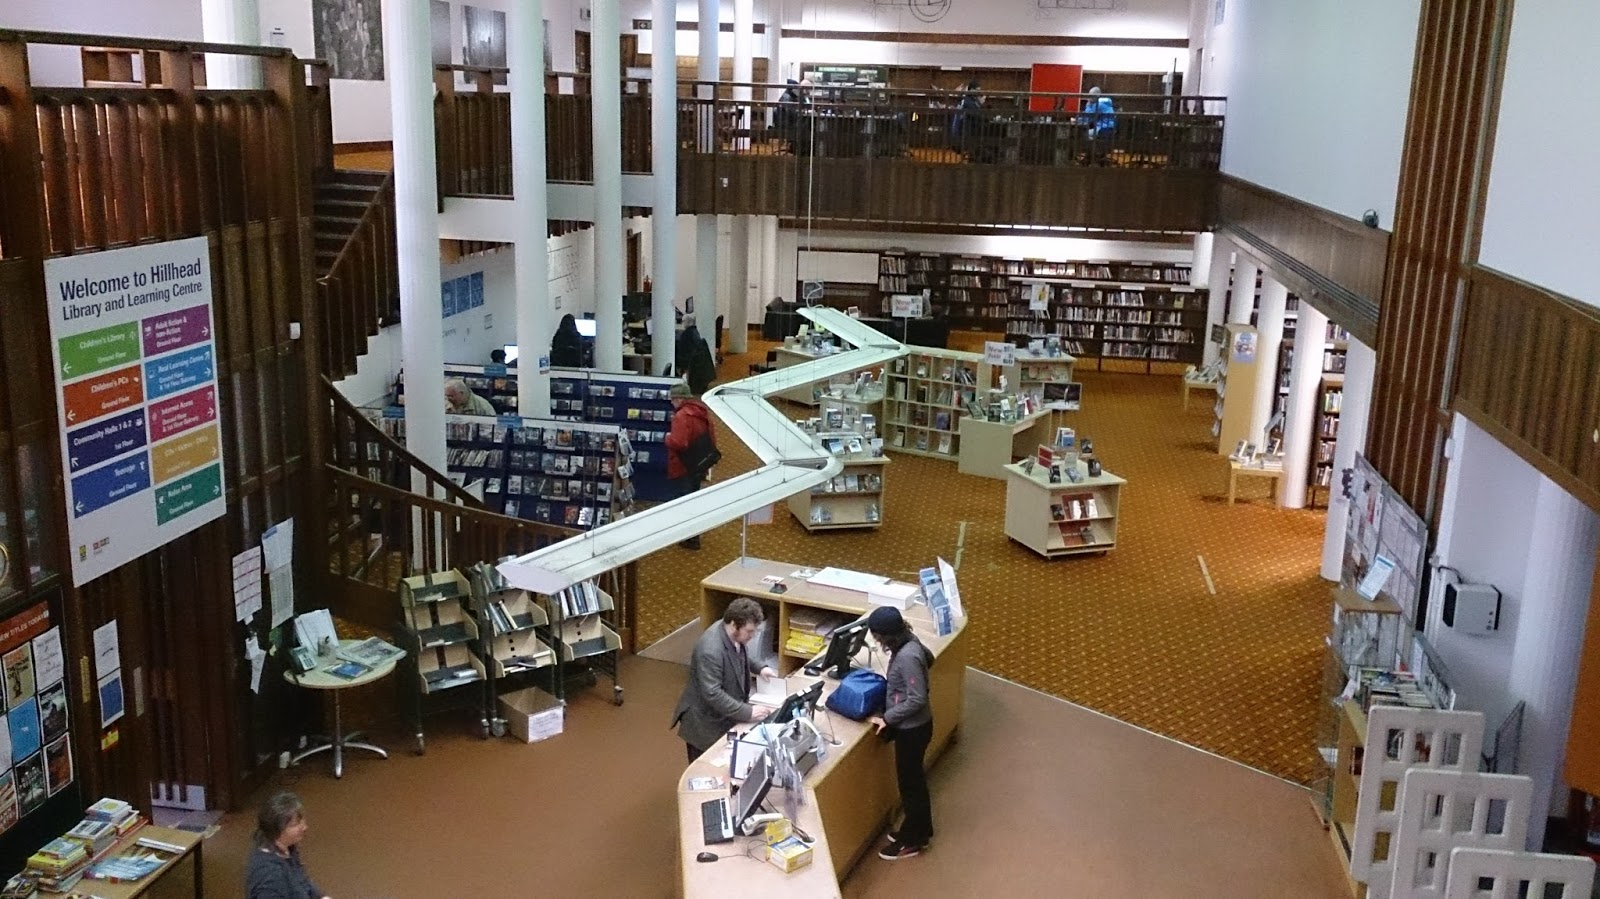 Glasgow Punter: Glasgow Libraries, Then and Now